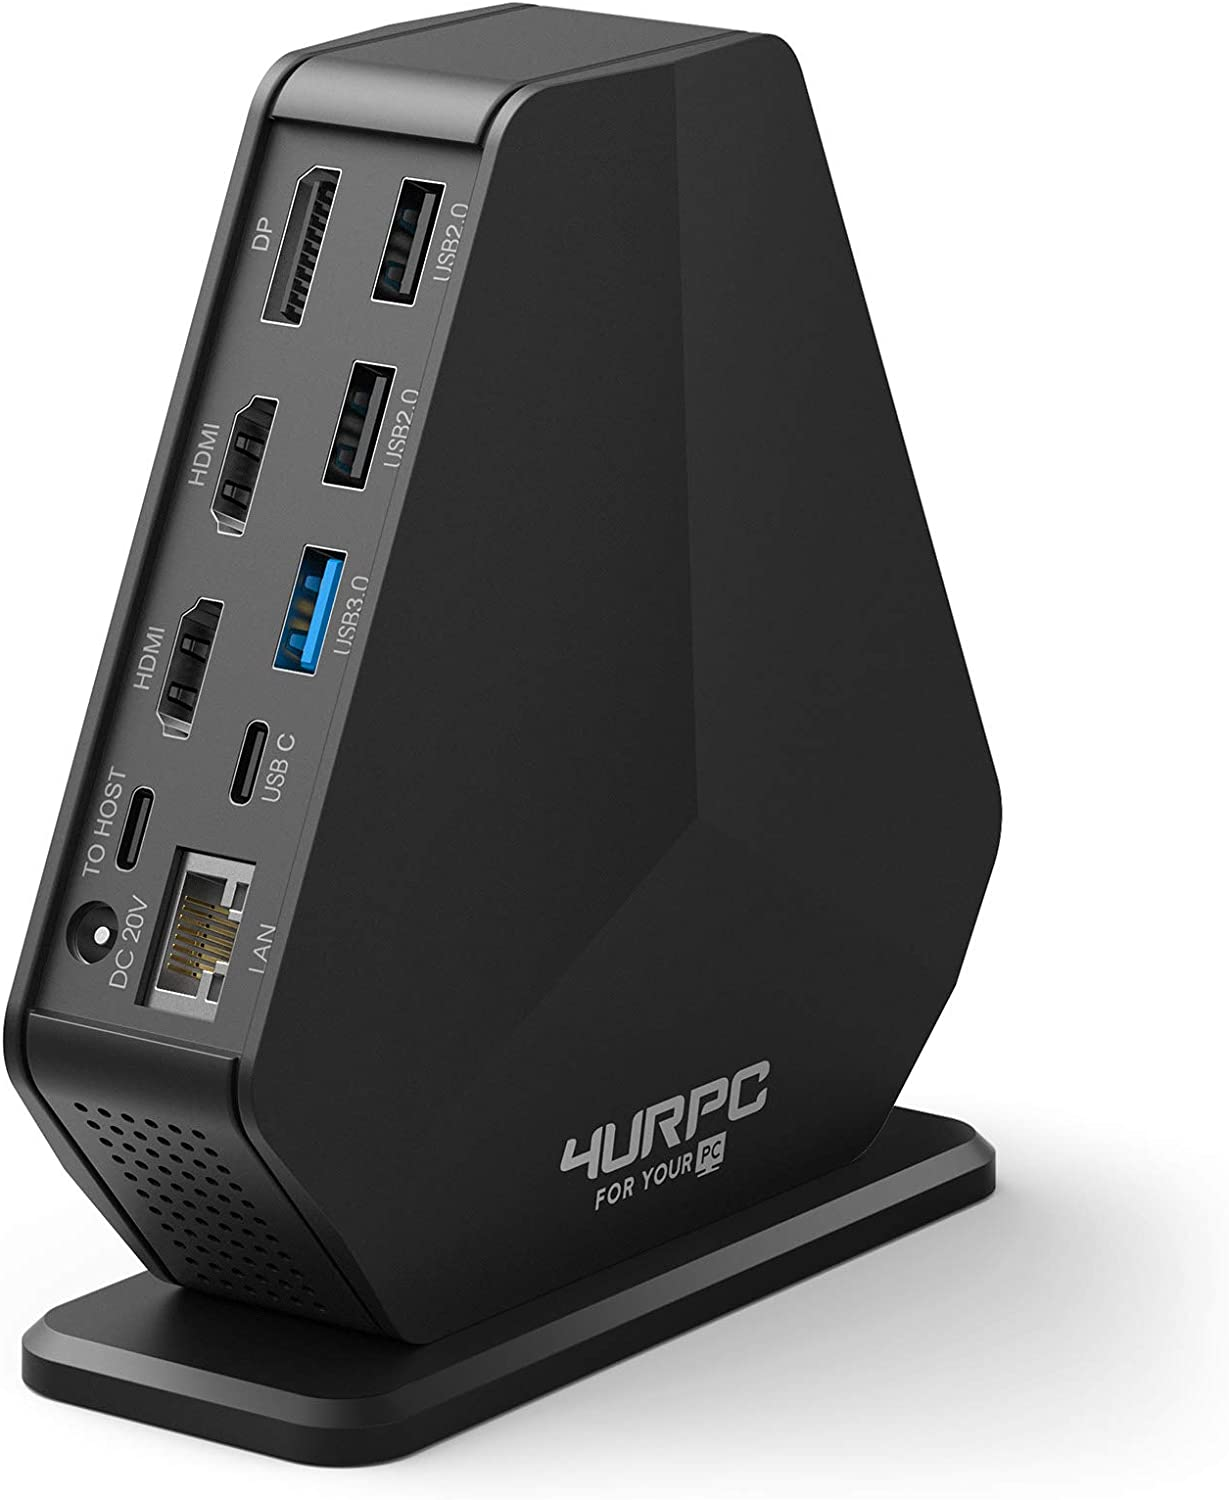 4URPC Triple 4K Monitor Docking Station for USB-C Windows MacBook Pro Triple/Dual 4K Video Outputs with Dual HDMI & DisplayPort, 5 x USB-A, 60W Power Delivery, Ethernet, Audio & Mic for macOS Grey